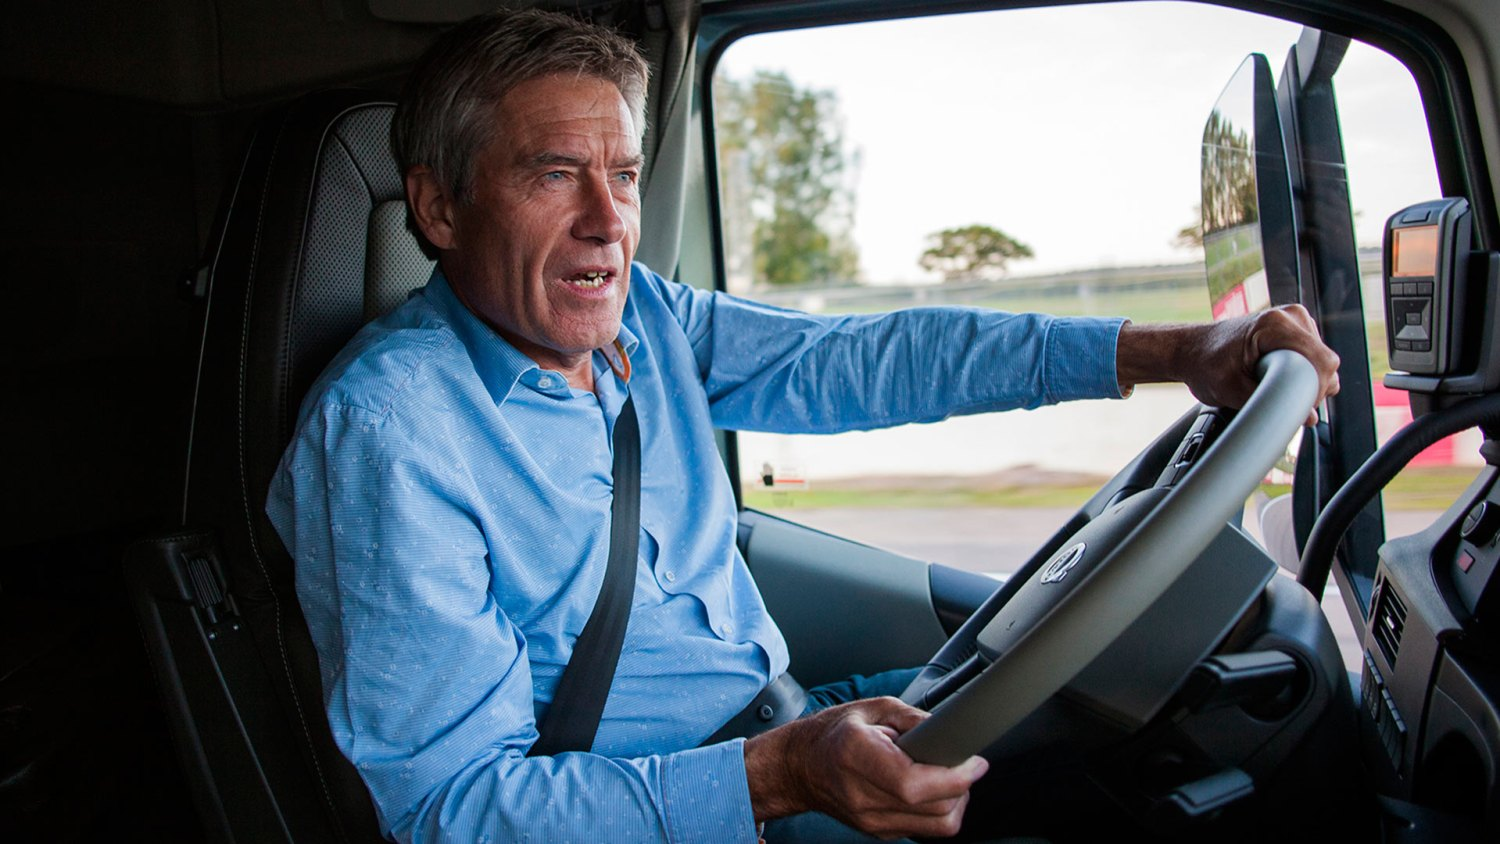 Tiff Needell axed from Fifth Gear TV